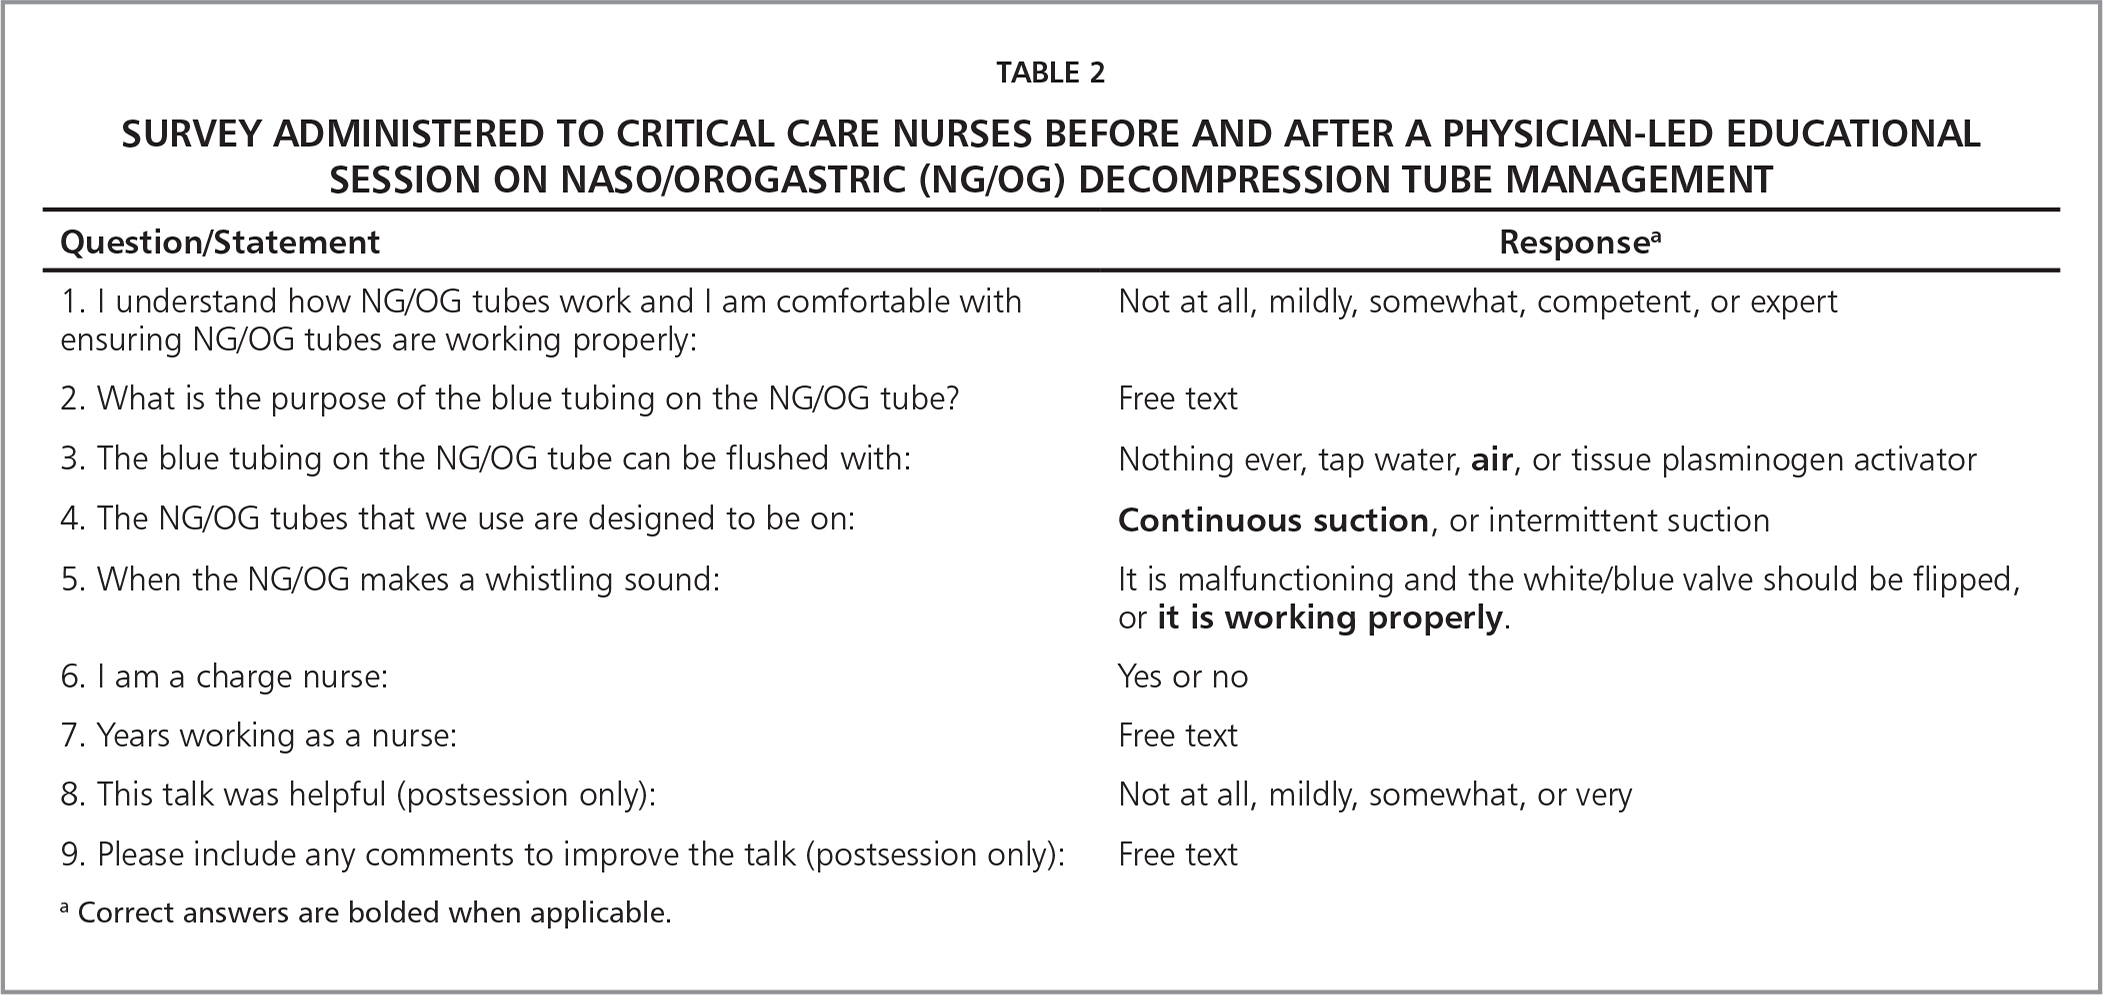 Survey Administered to Critical Care Nurses Before and After a Physician-Led Educational Session on Naso/Orogastric (NG/OG) Decompression Tube Management